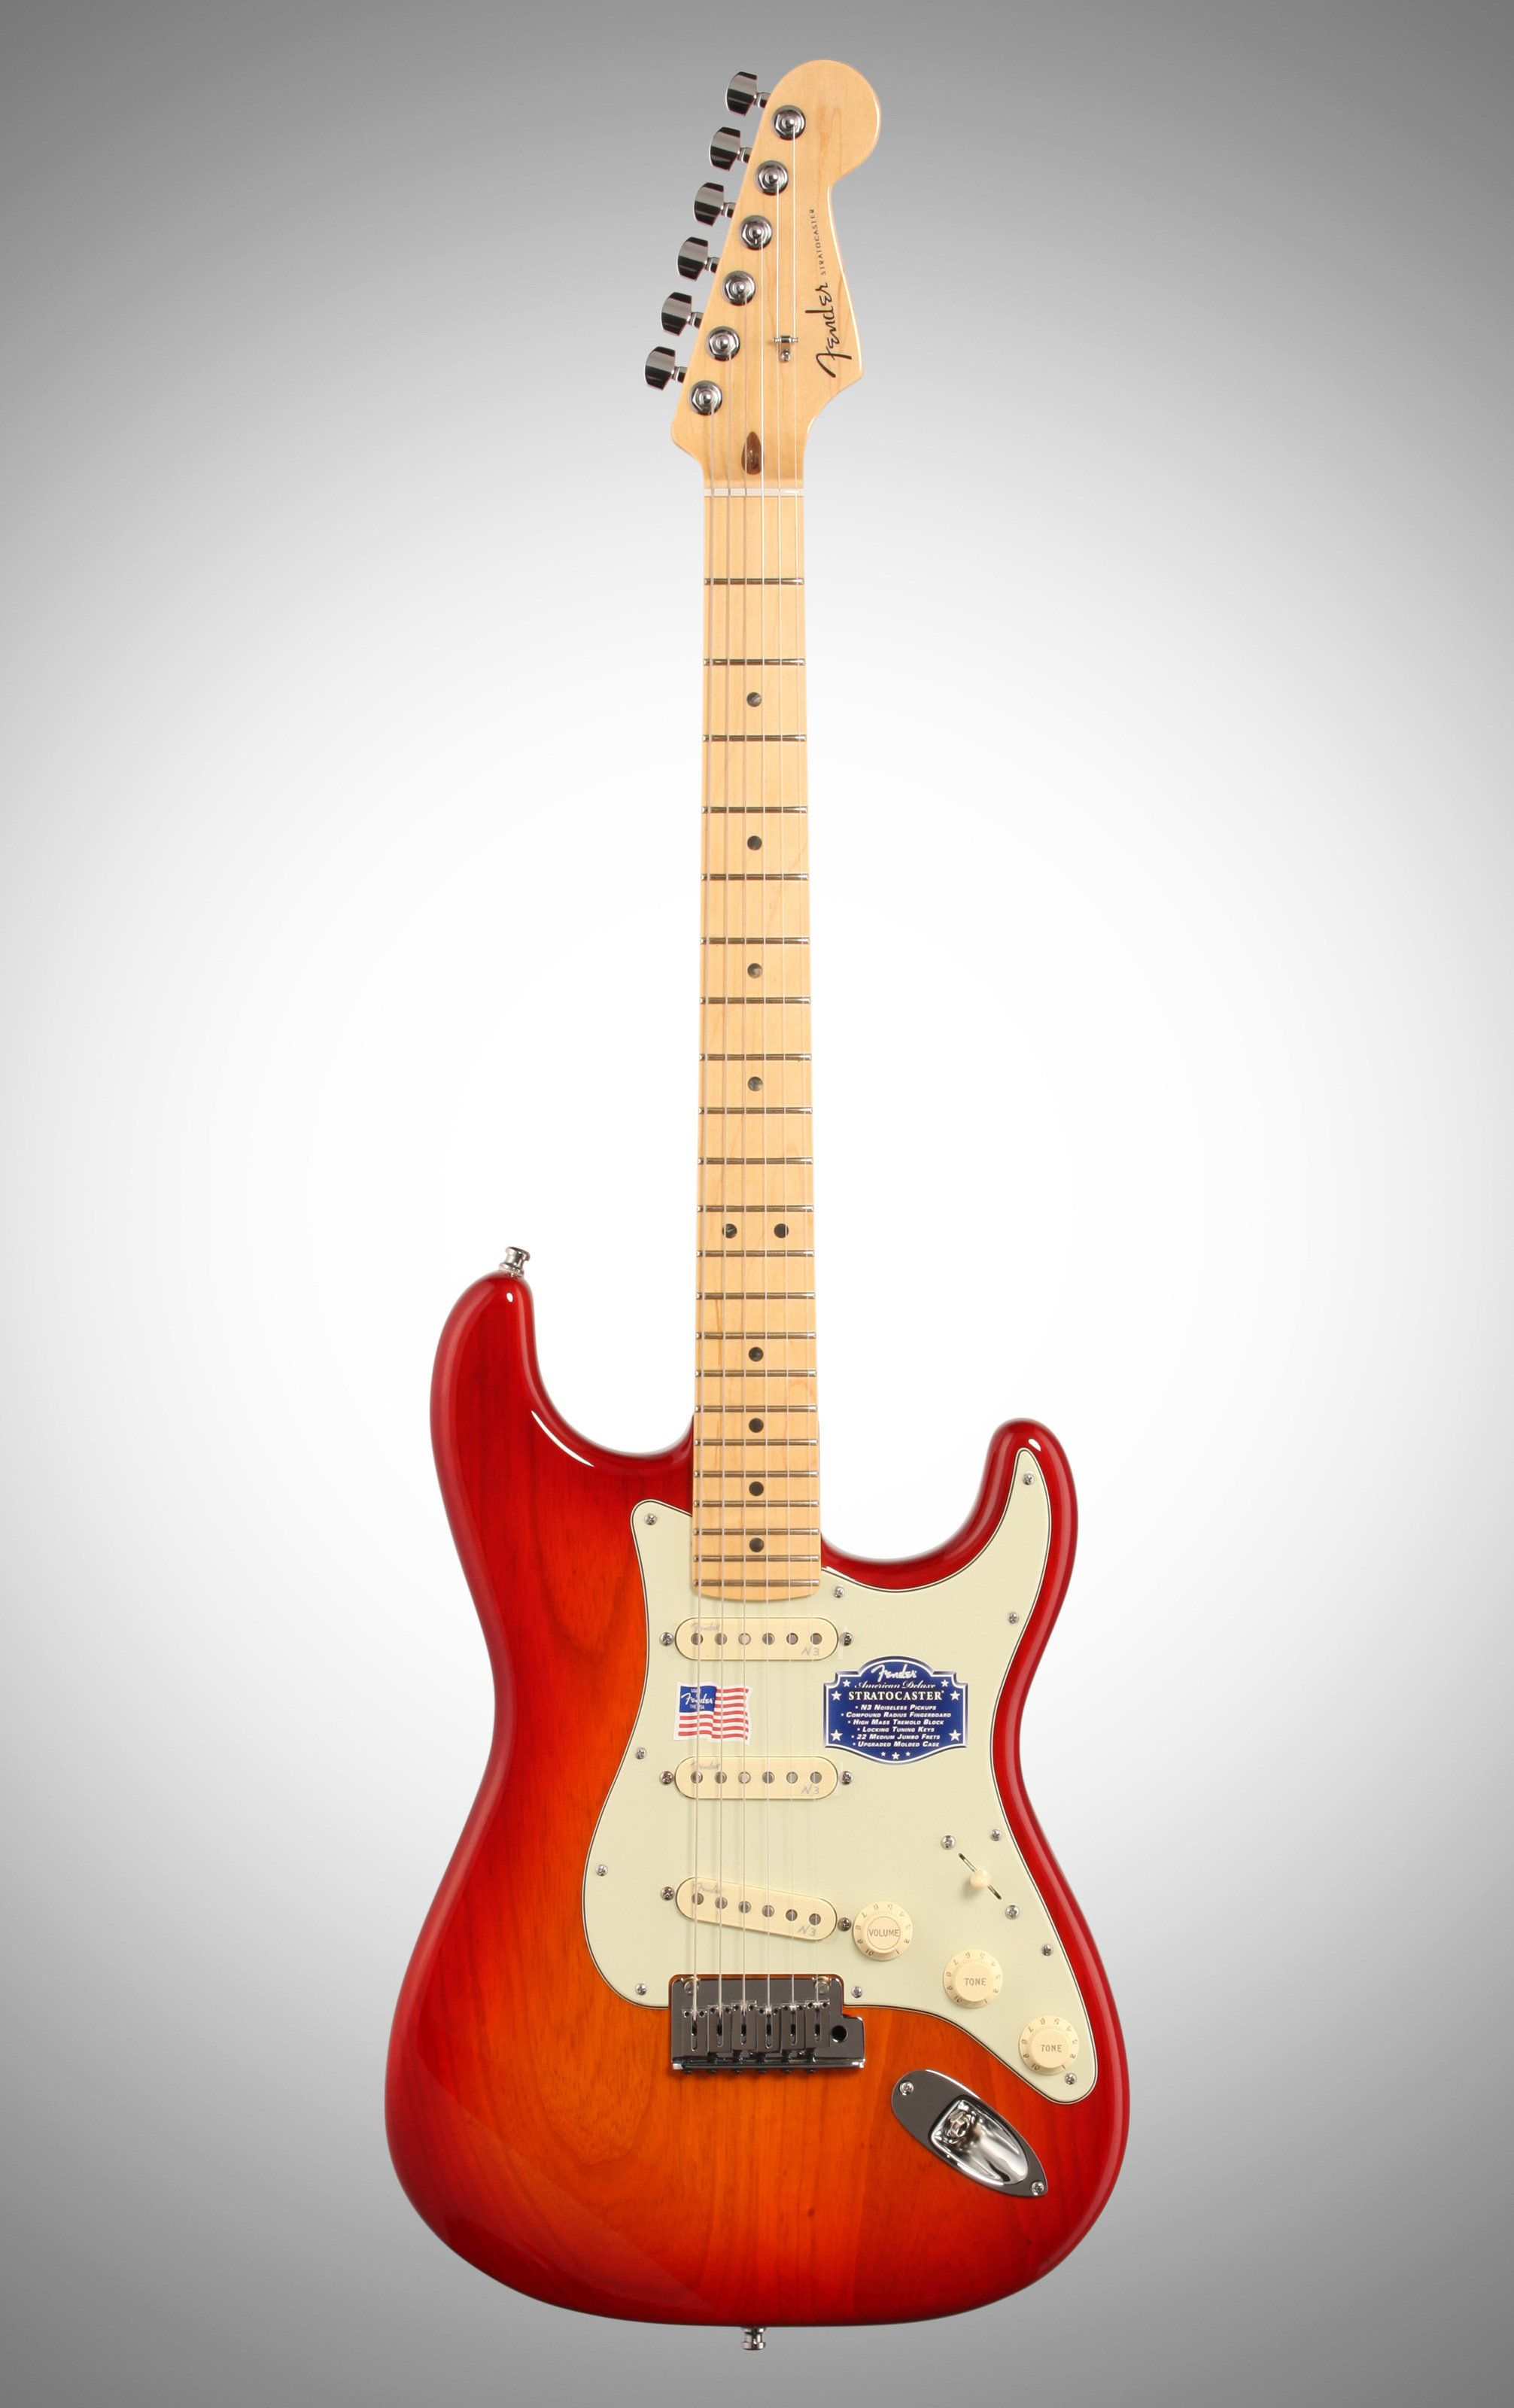 Fender American Deluxe Stratocaster Ash Electric Guitar